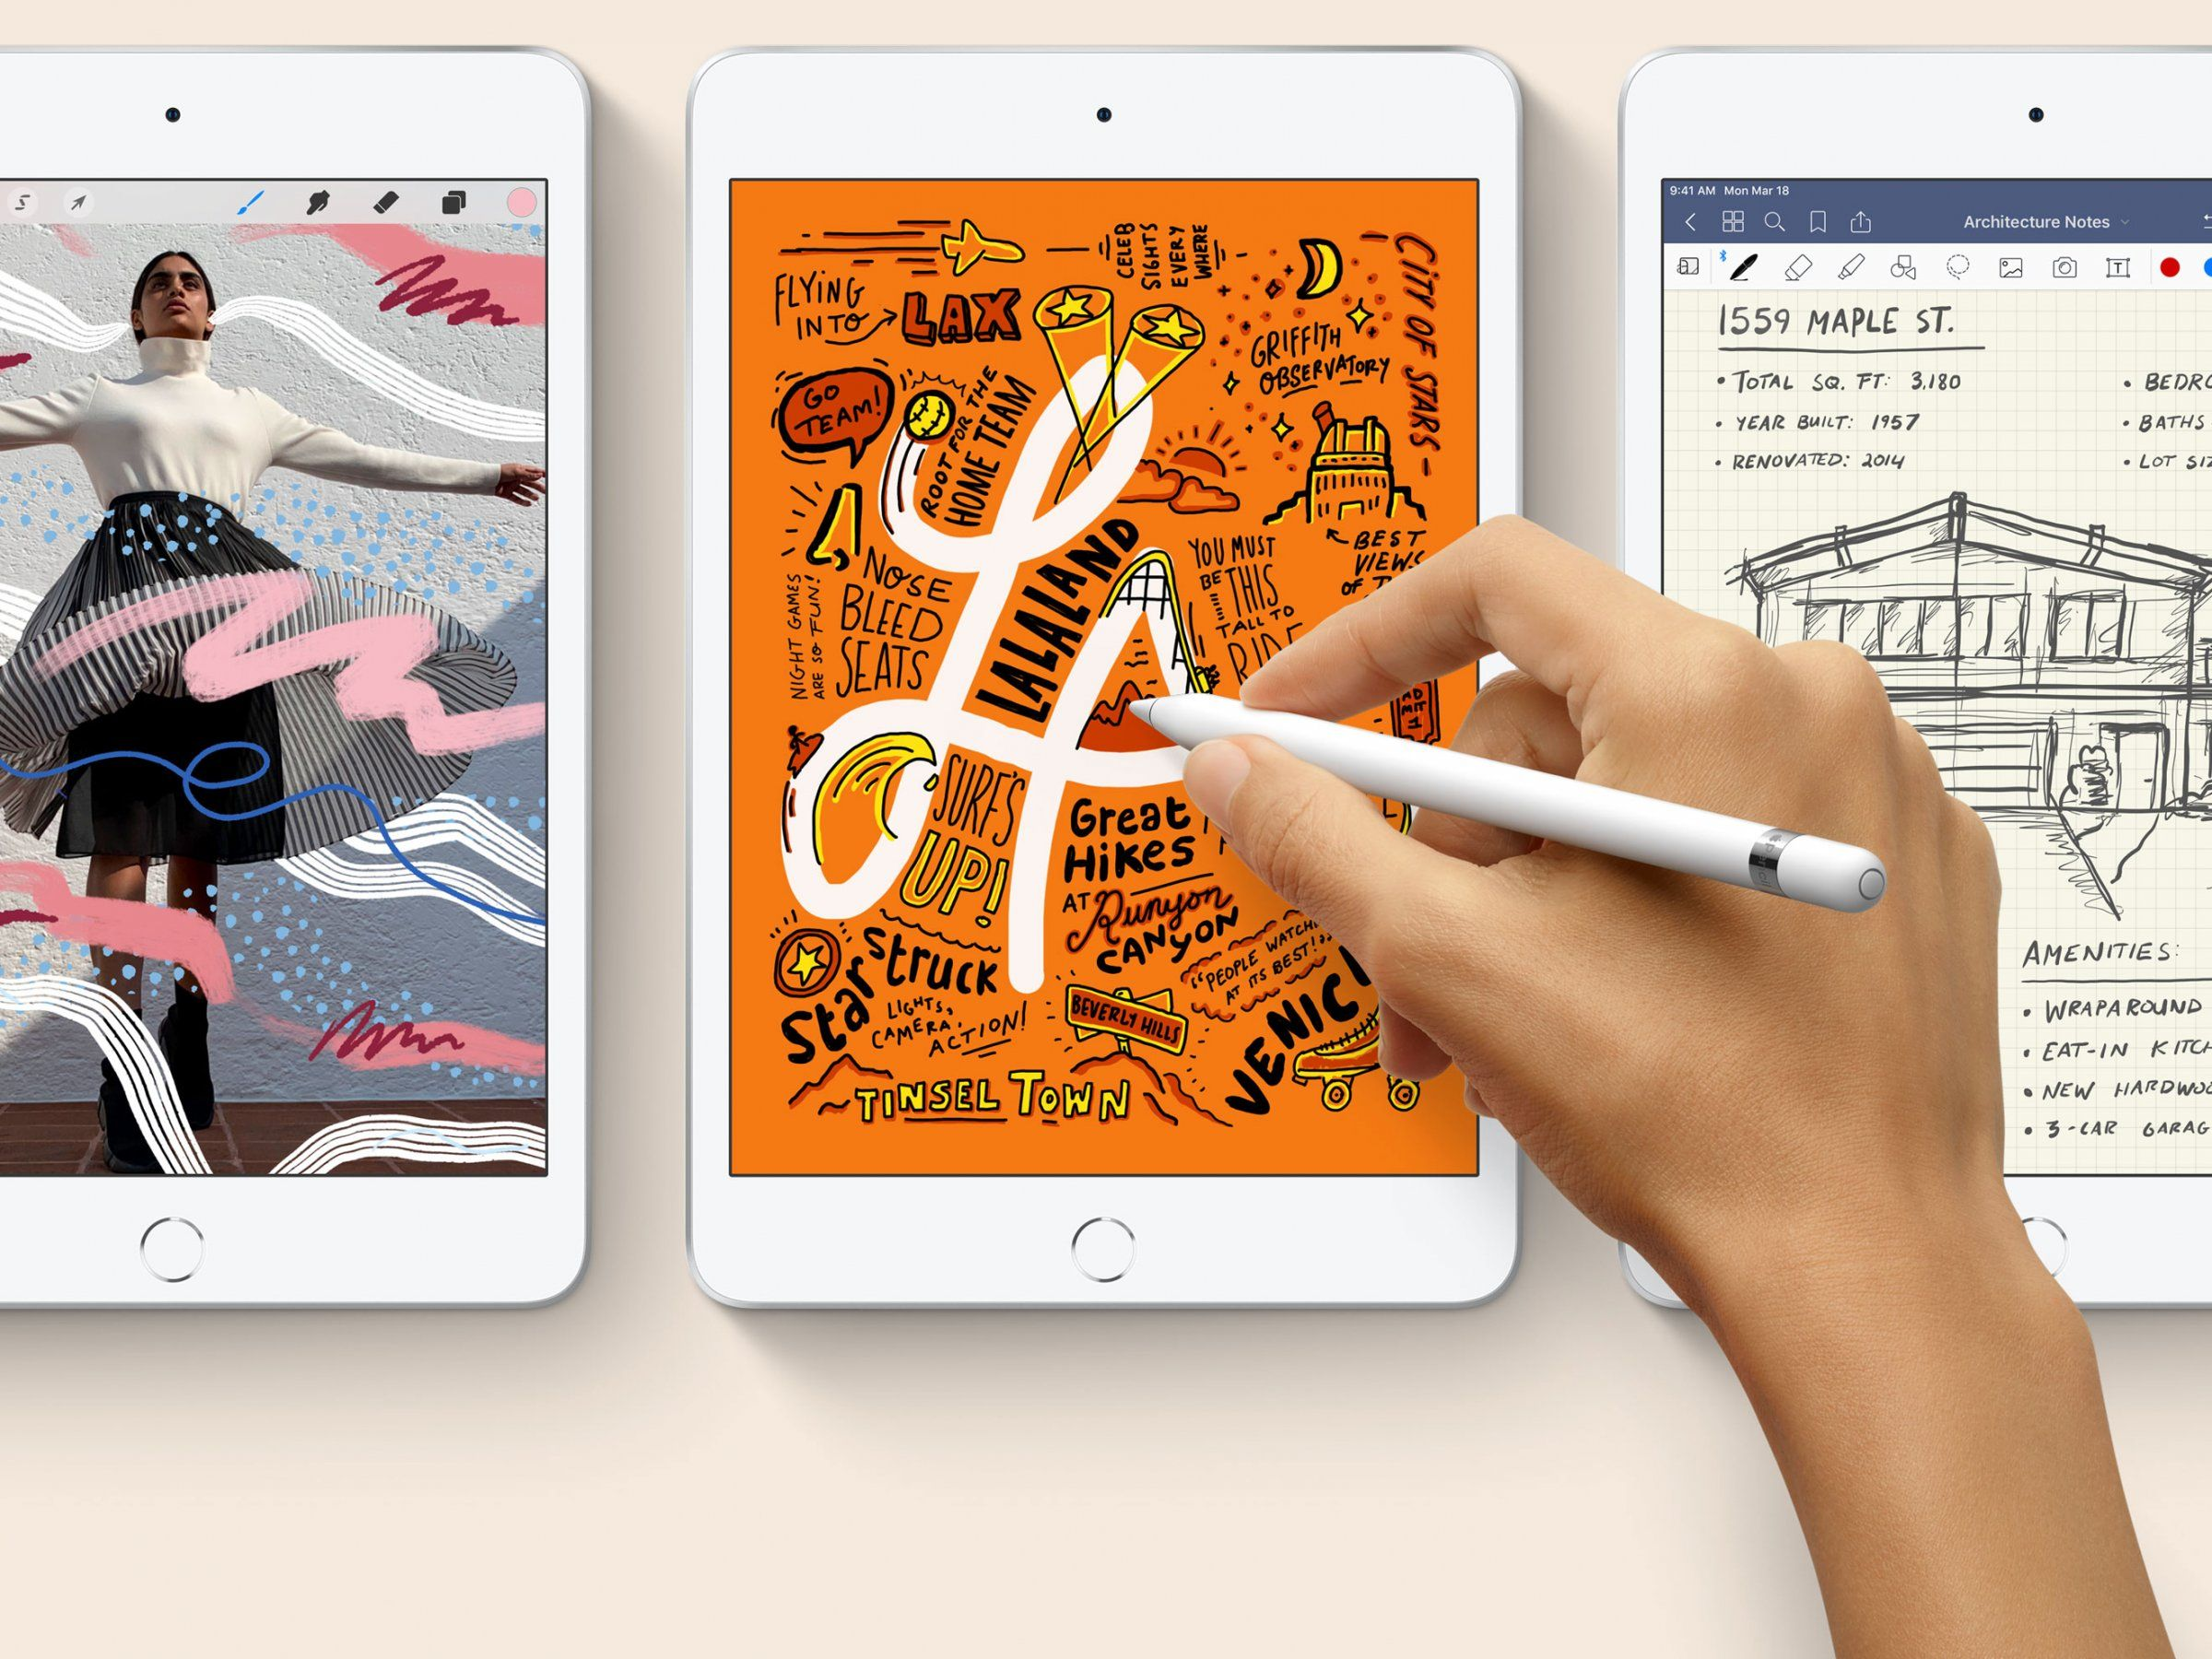 Apple S New Ipad Air And Ipad Mini Are Available To Buy Right Now